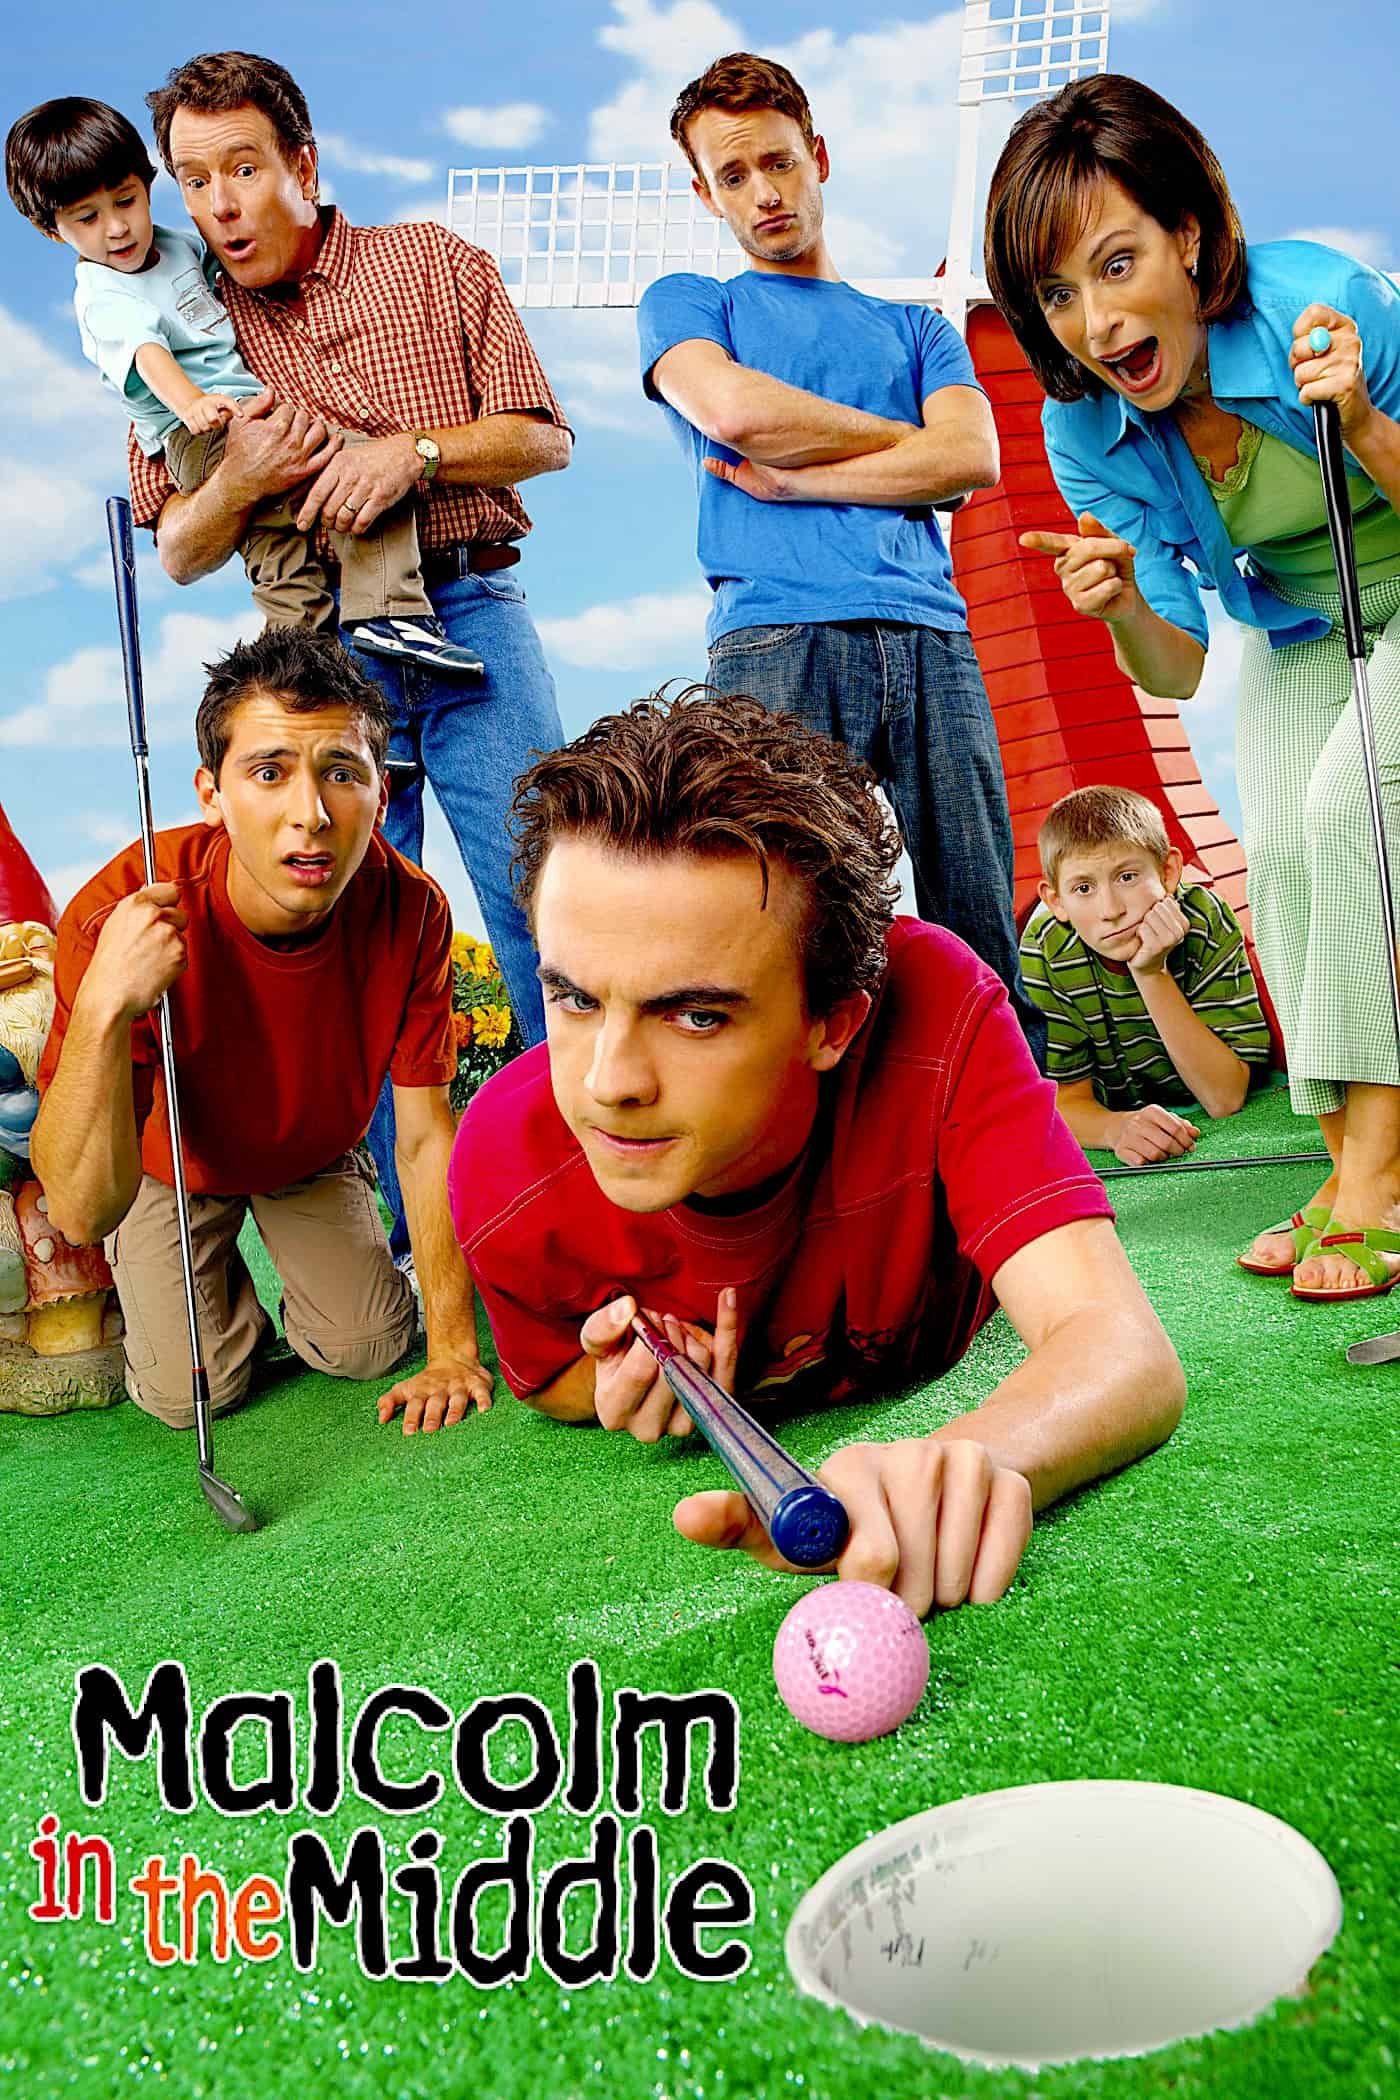 Malcolm in the Middle, 2000